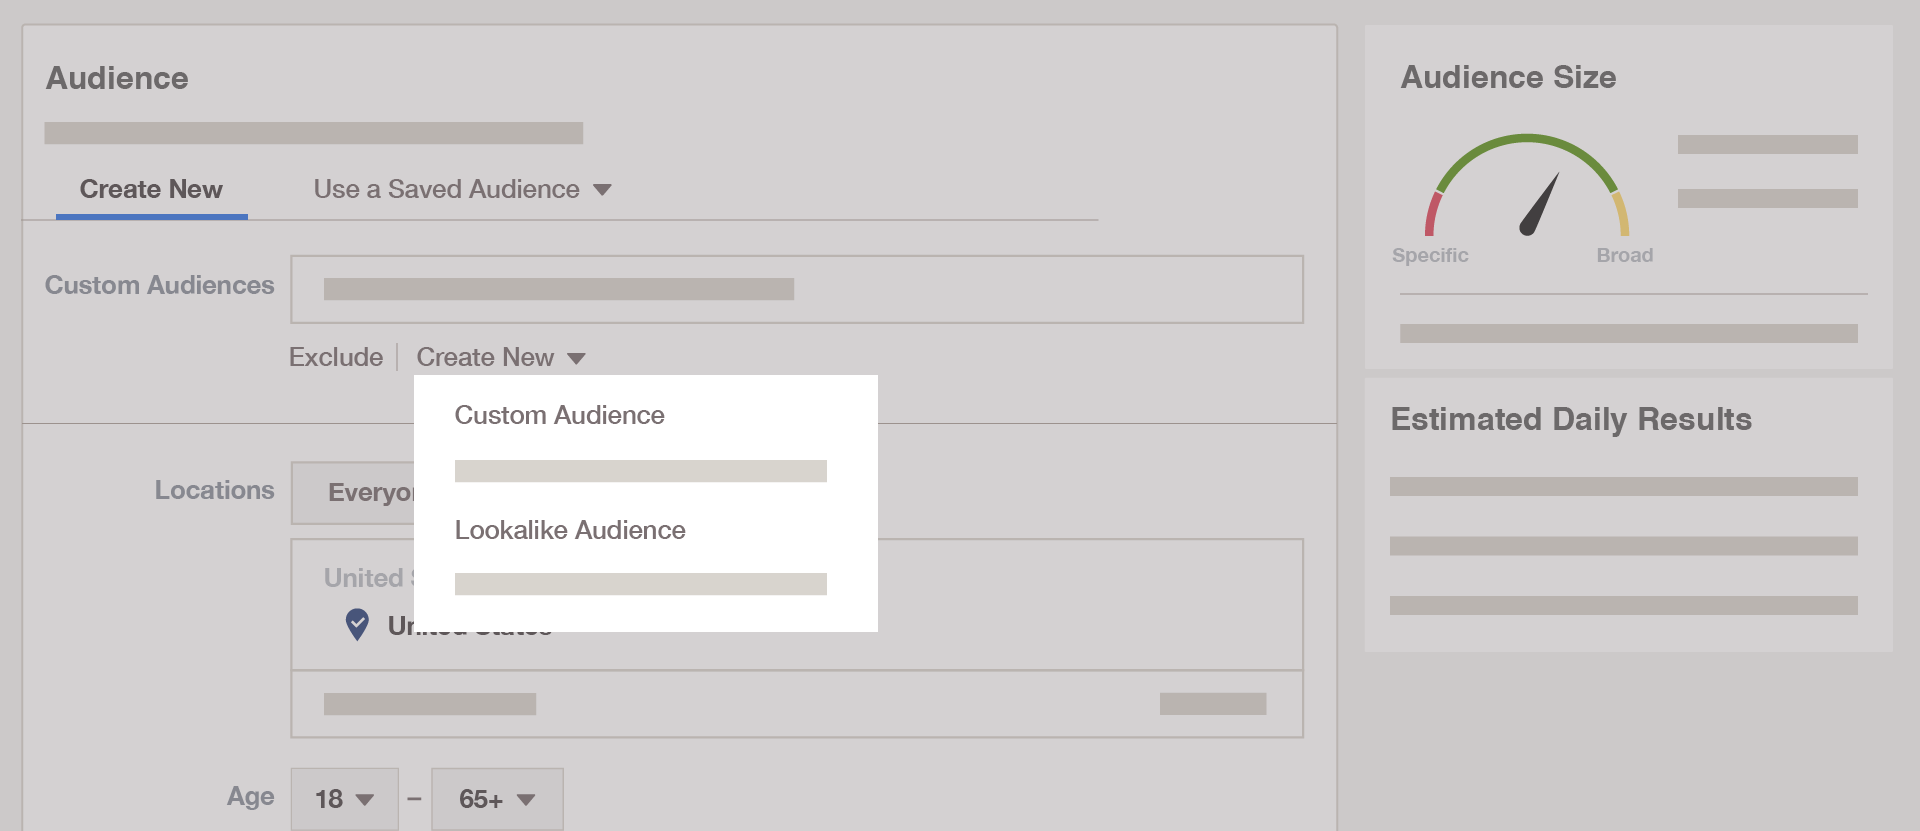 การสร้าง Custom Audience และ Lookalike Audience ใน Facebook Ads Manager